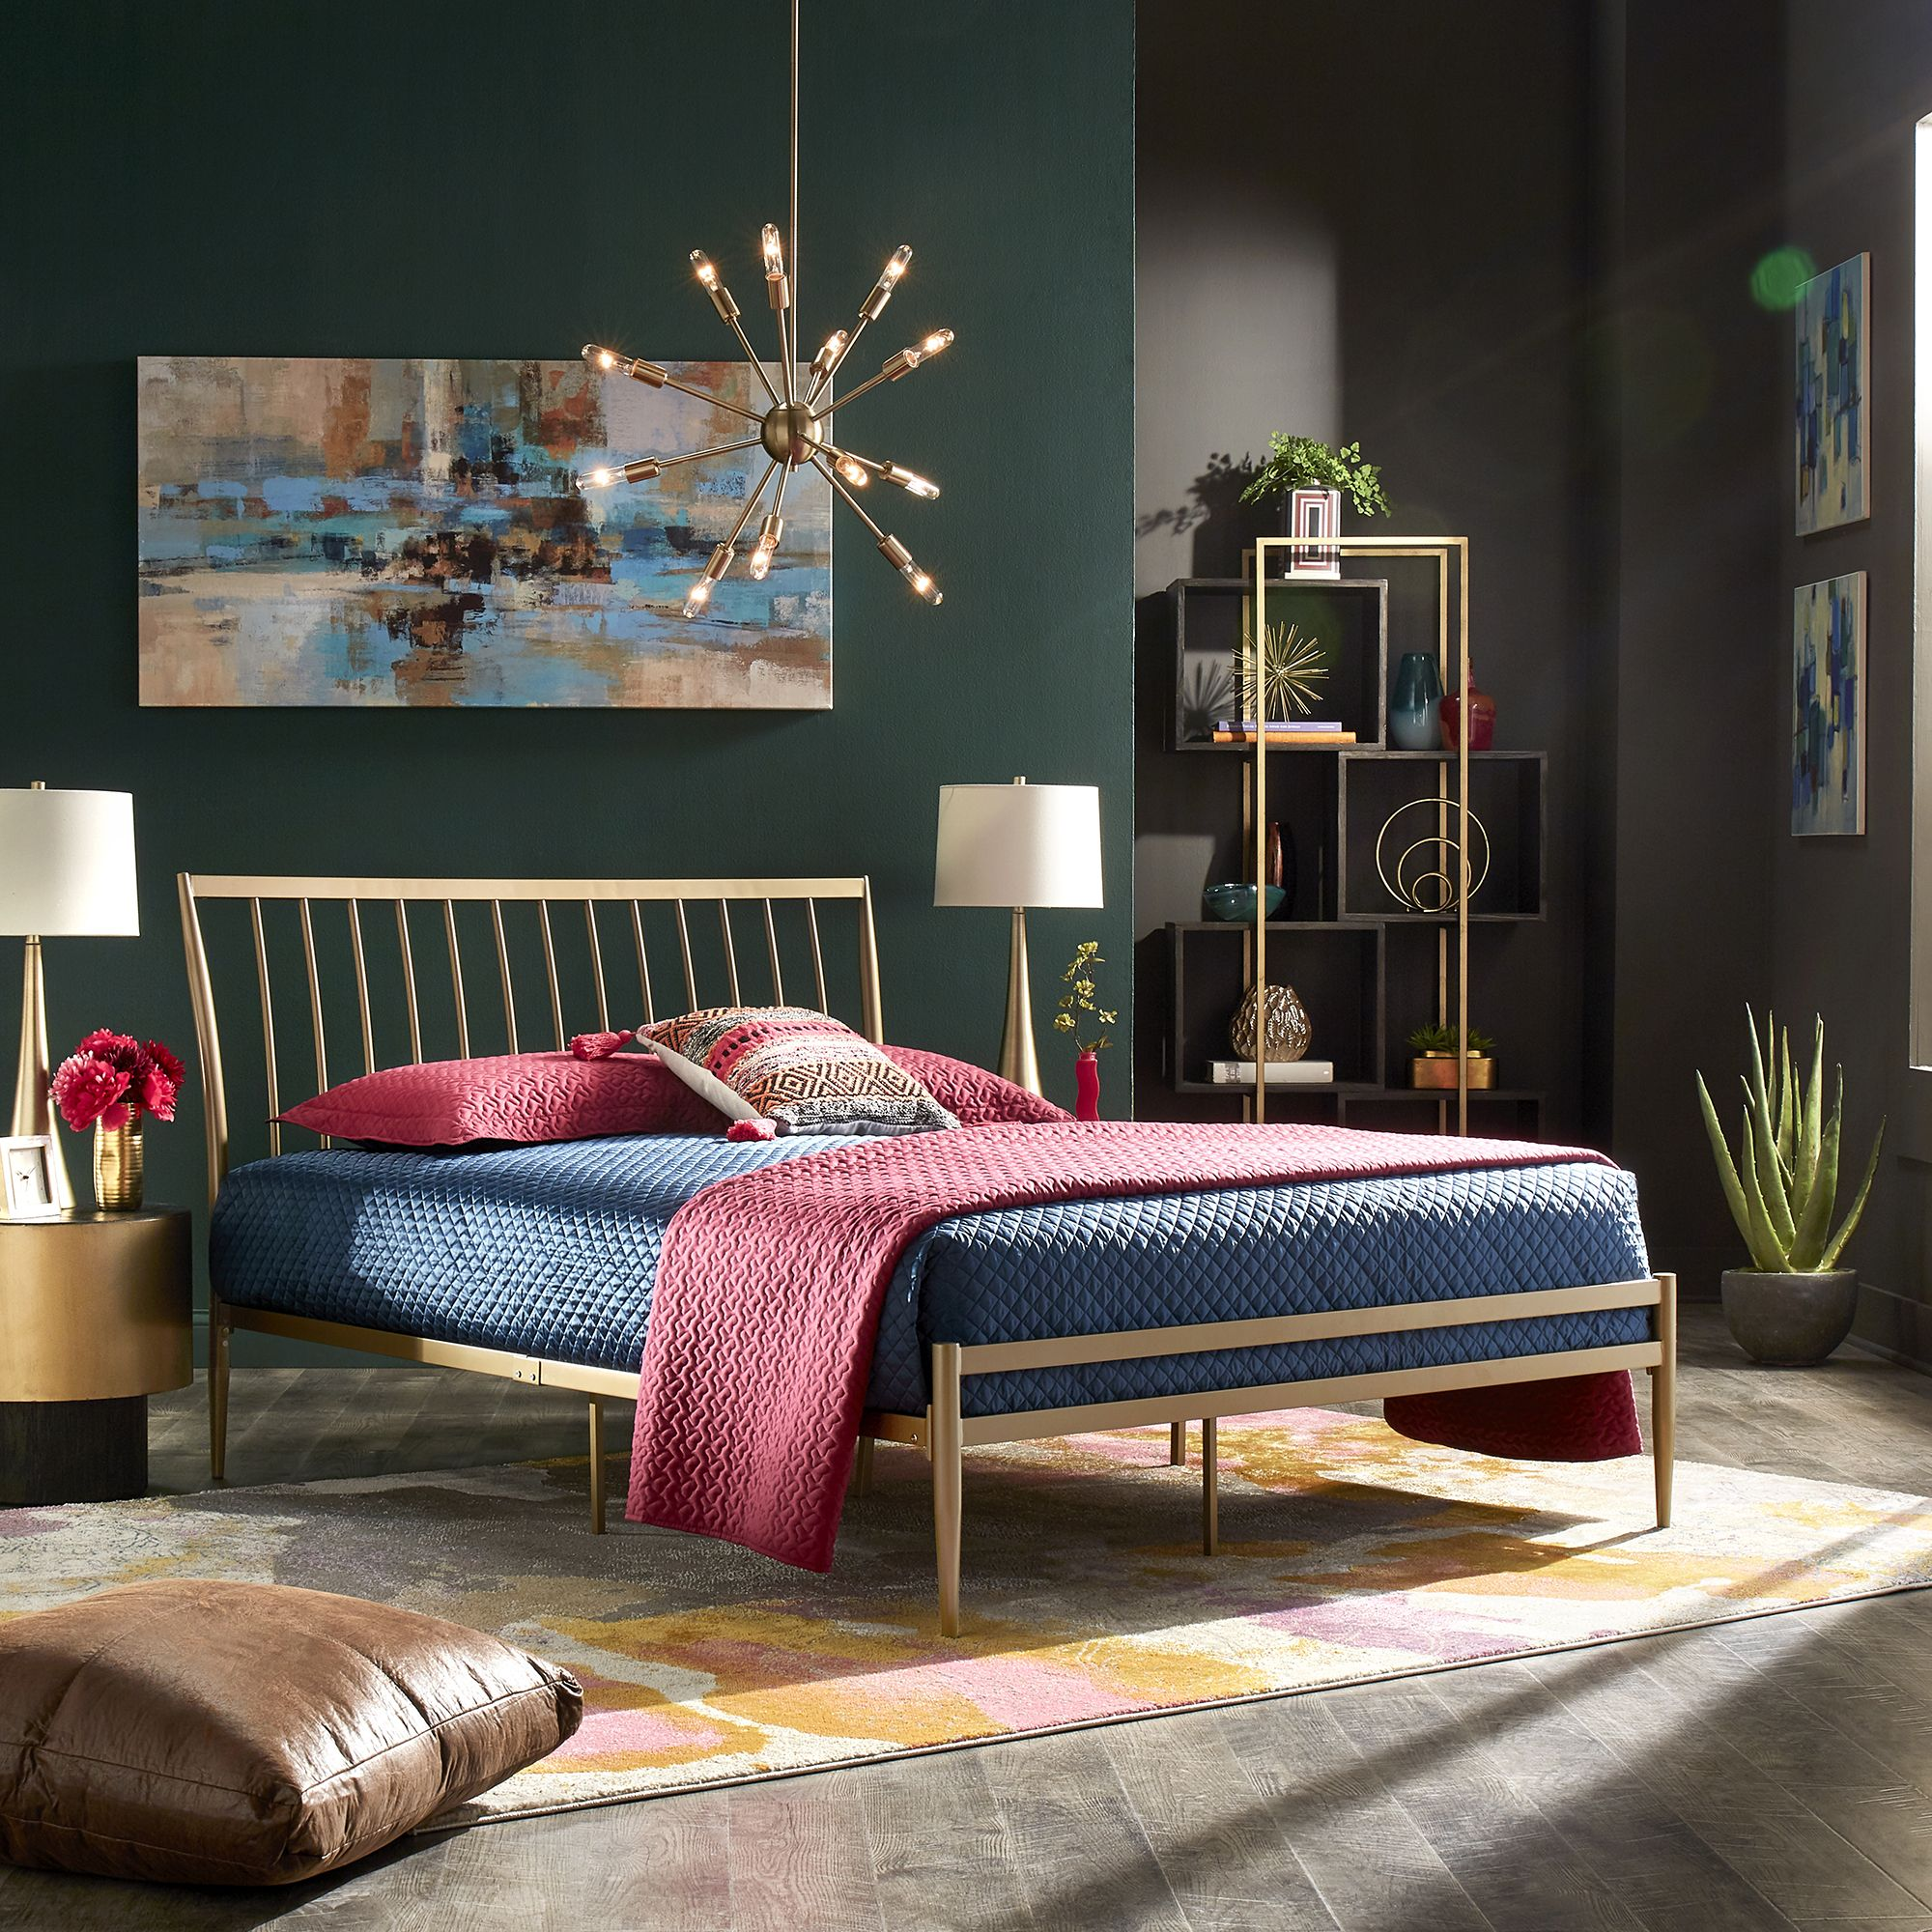 Weston Home Haverhill Gold Finish Metal Platform Queen Bed